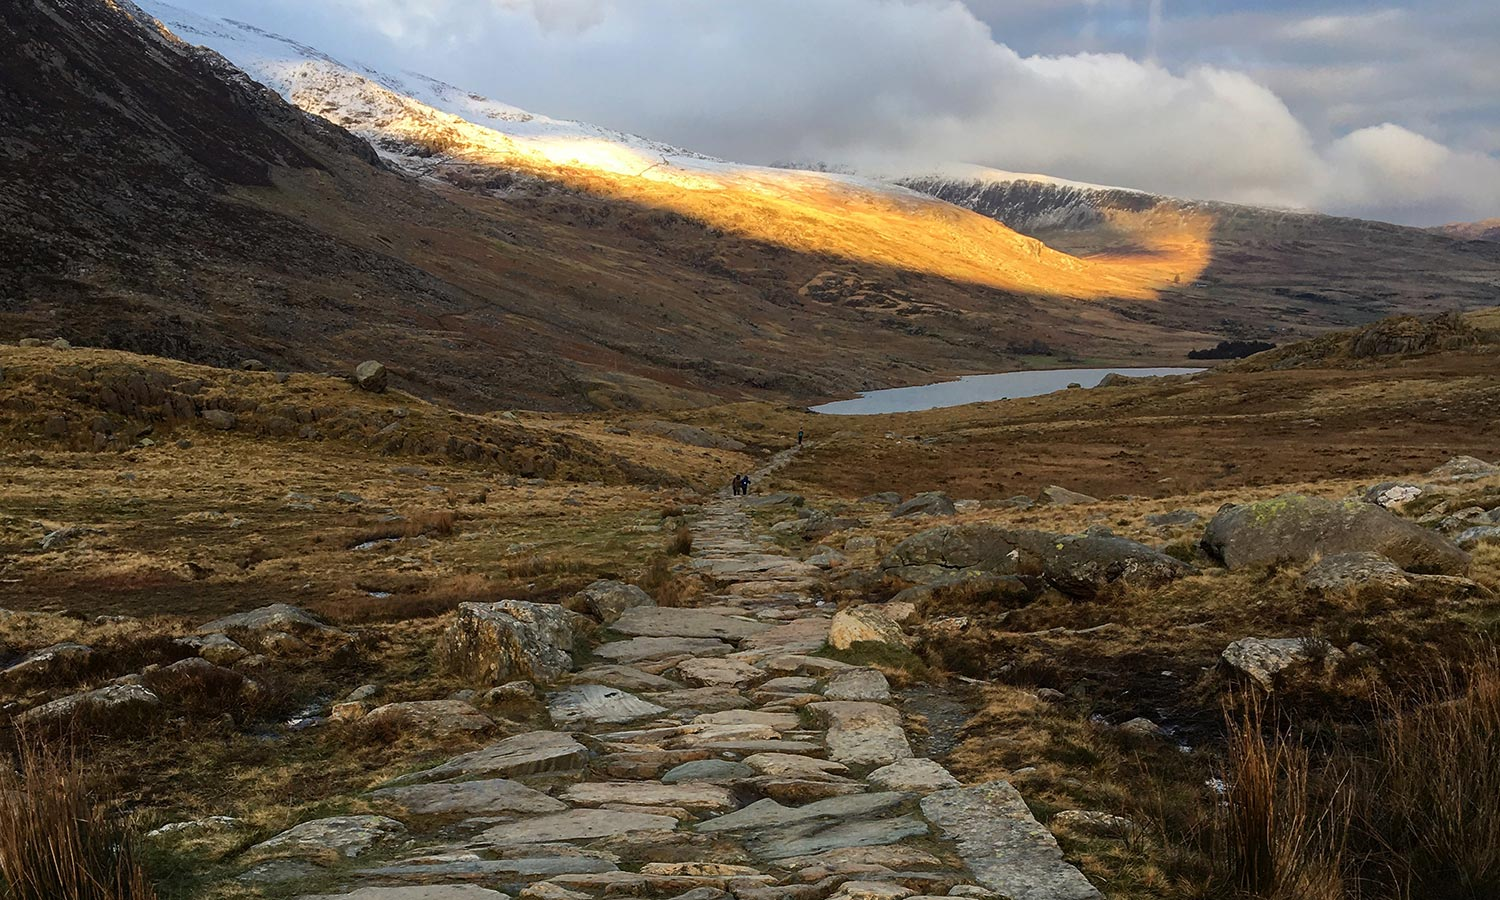 Footpath to lake Snowdonia